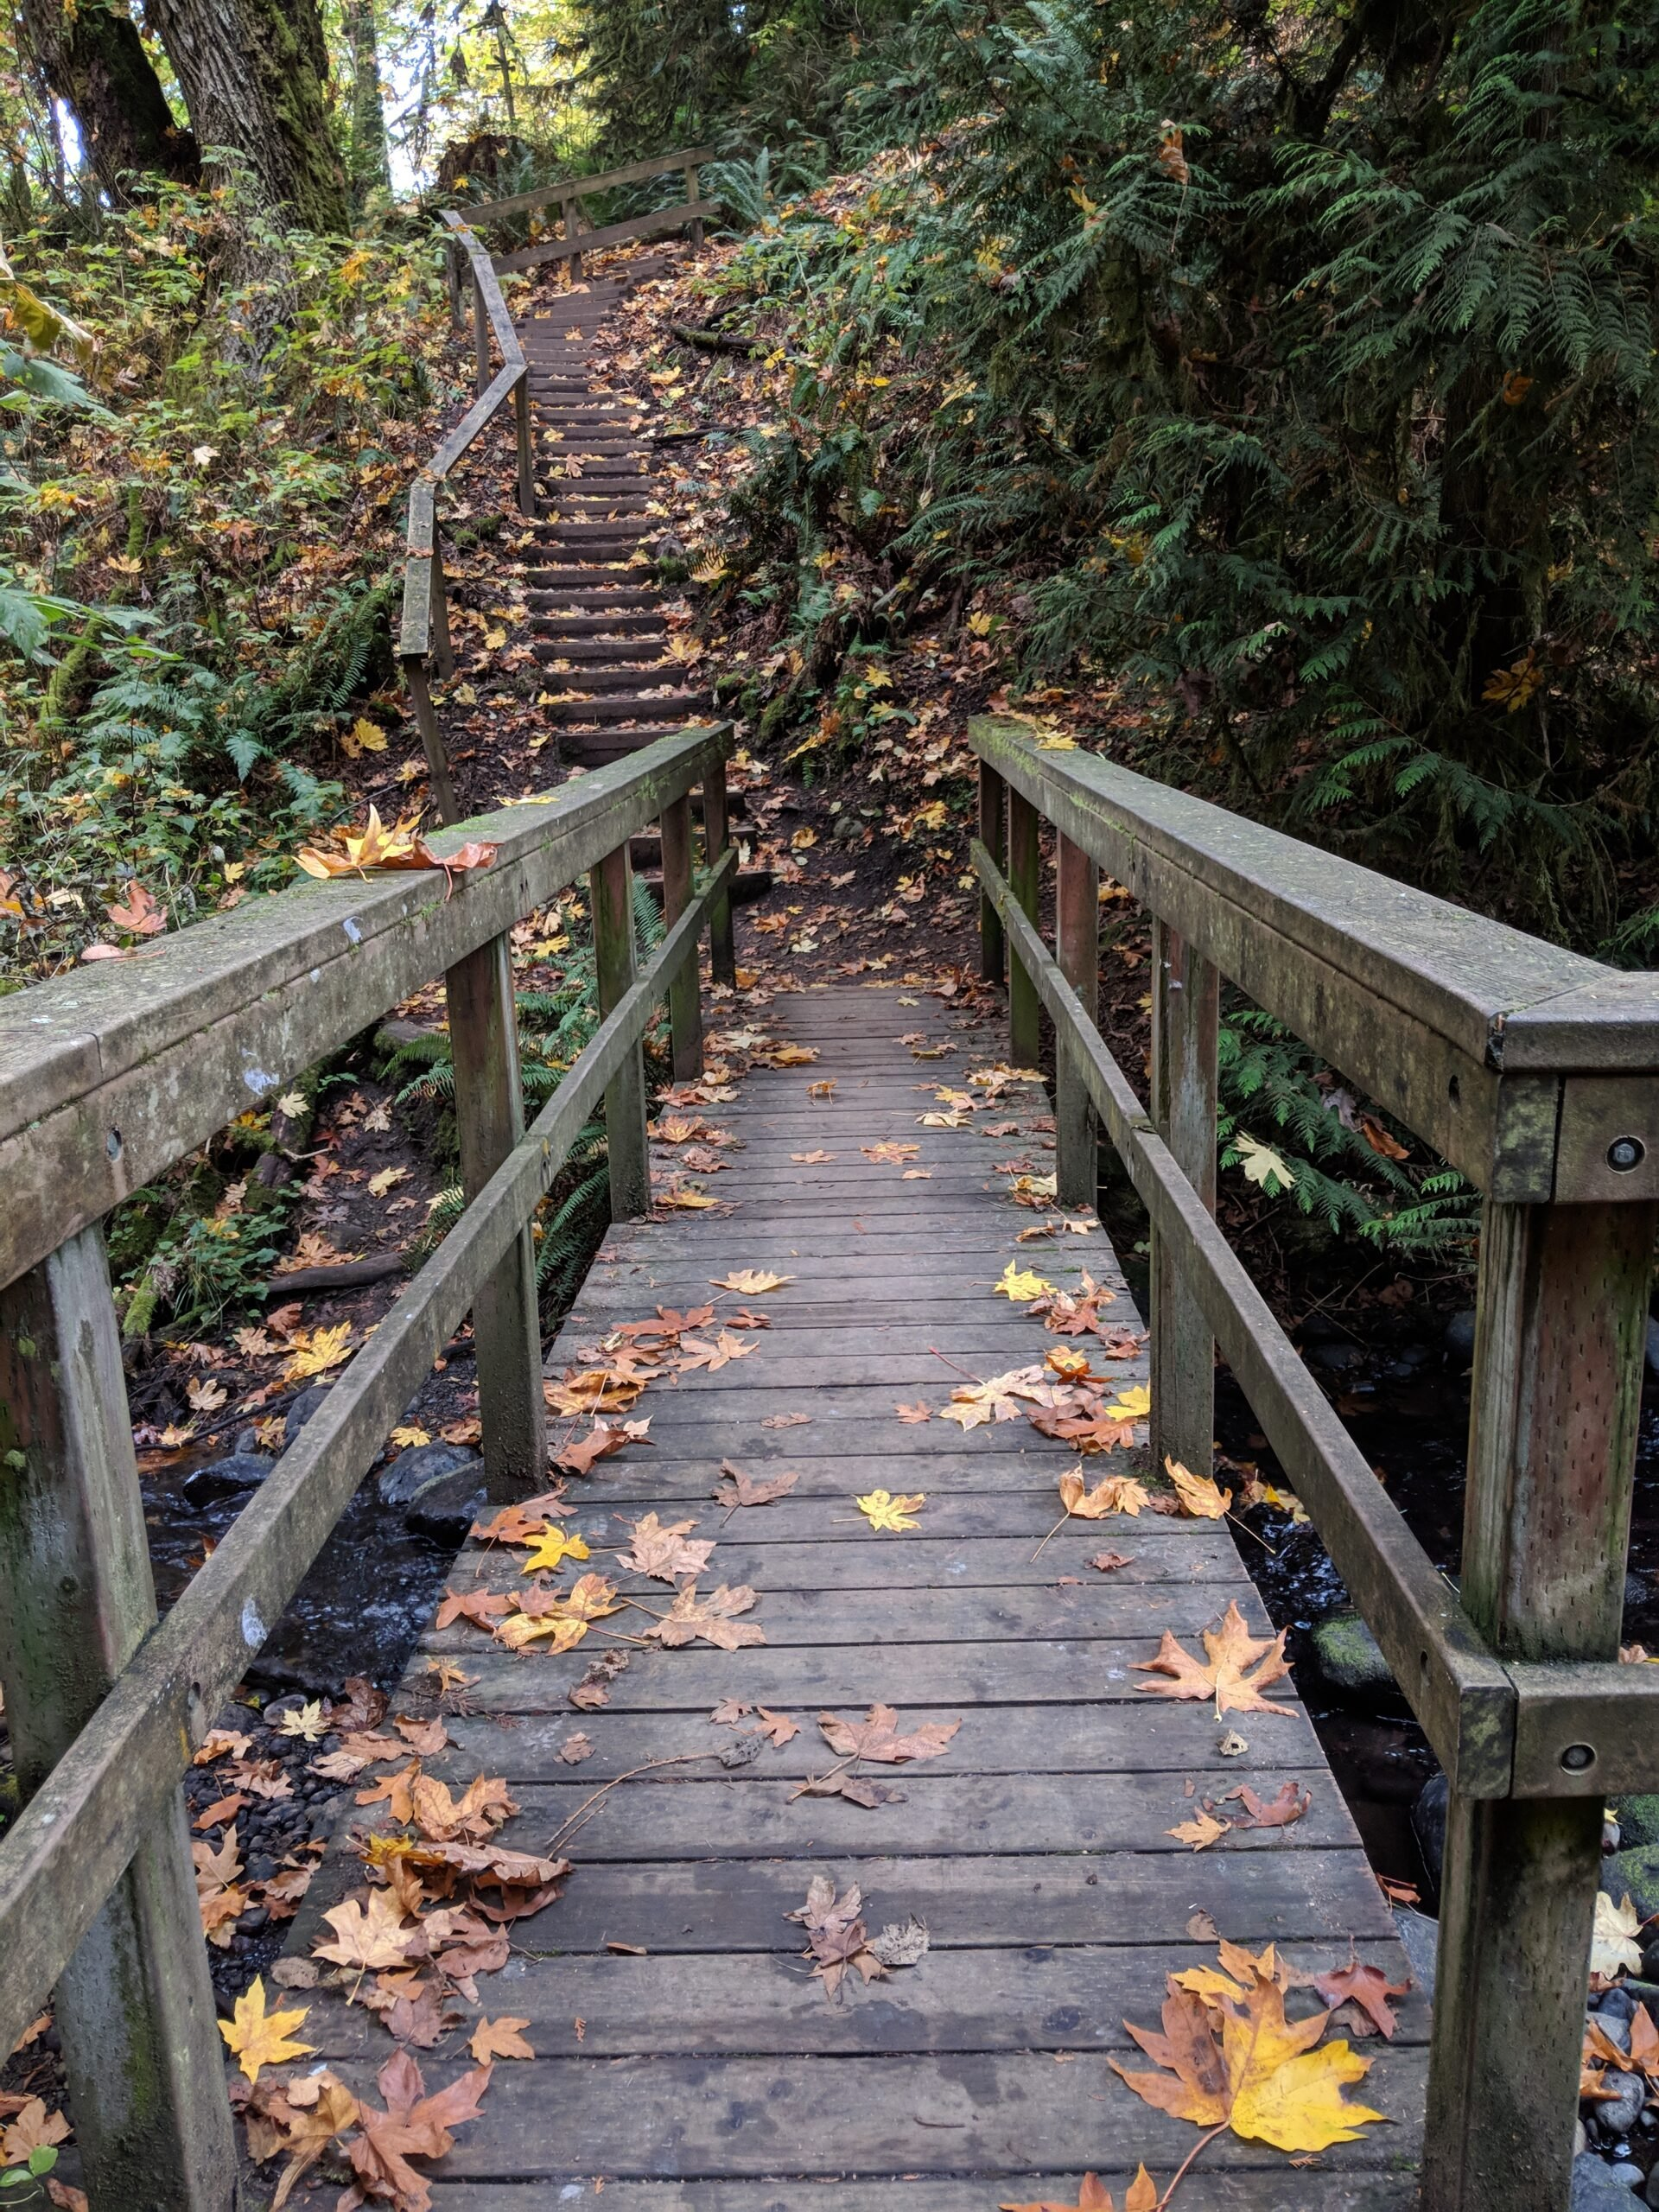 A wooden bridge over creek in flaming geyser state park.